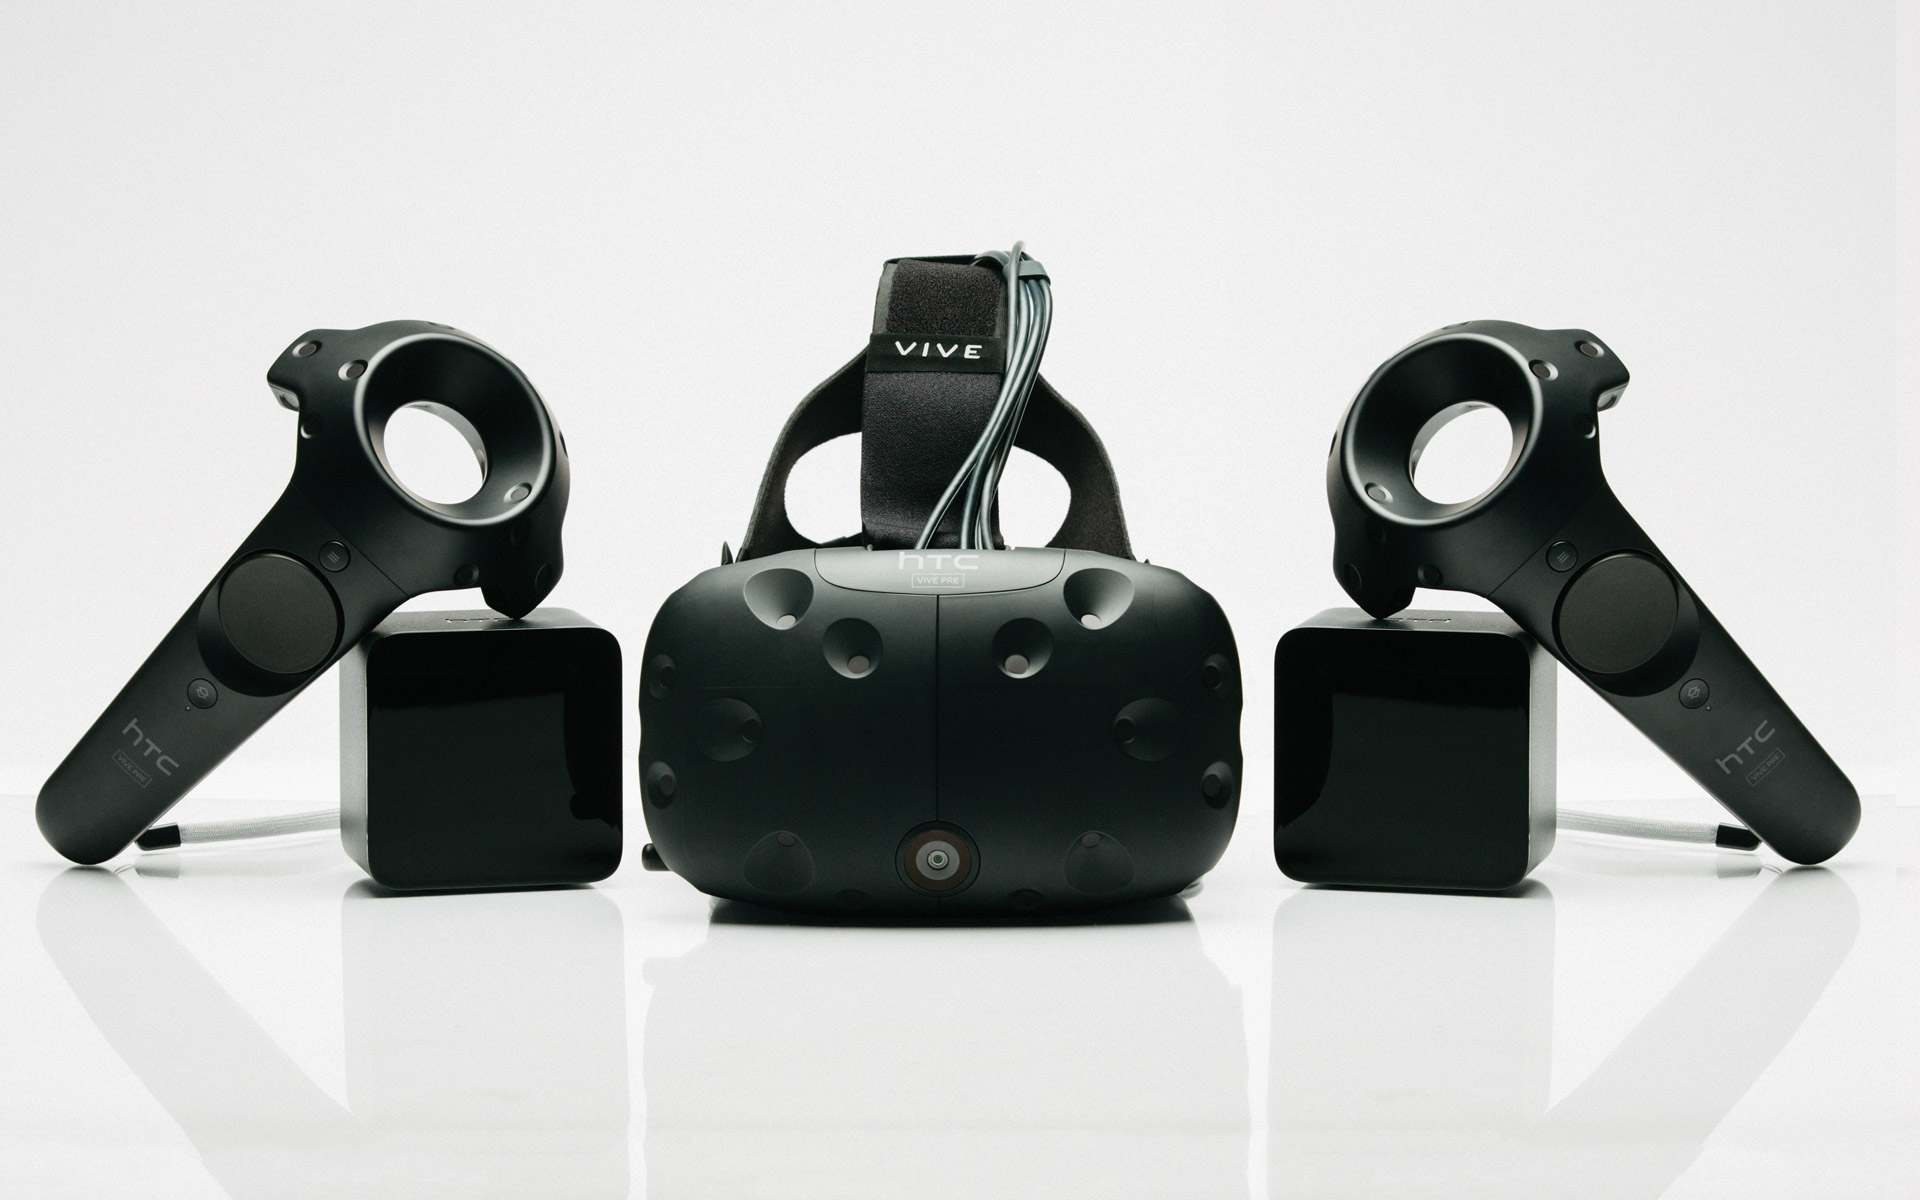 HTC VIVE coming to Australian retailers this month